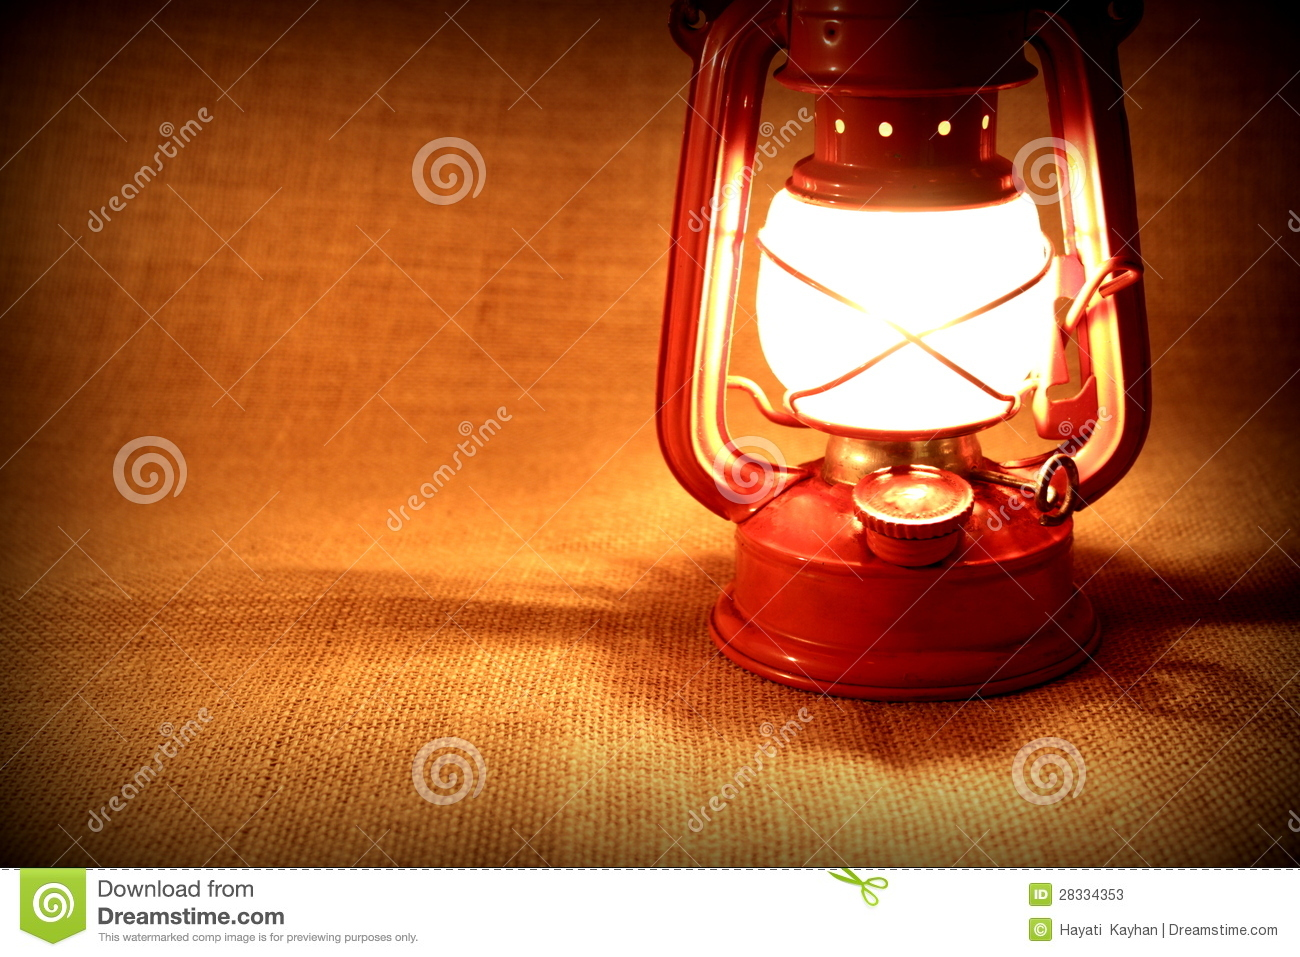 Animated Burning Lamp Oil : Opinions on oil lamp